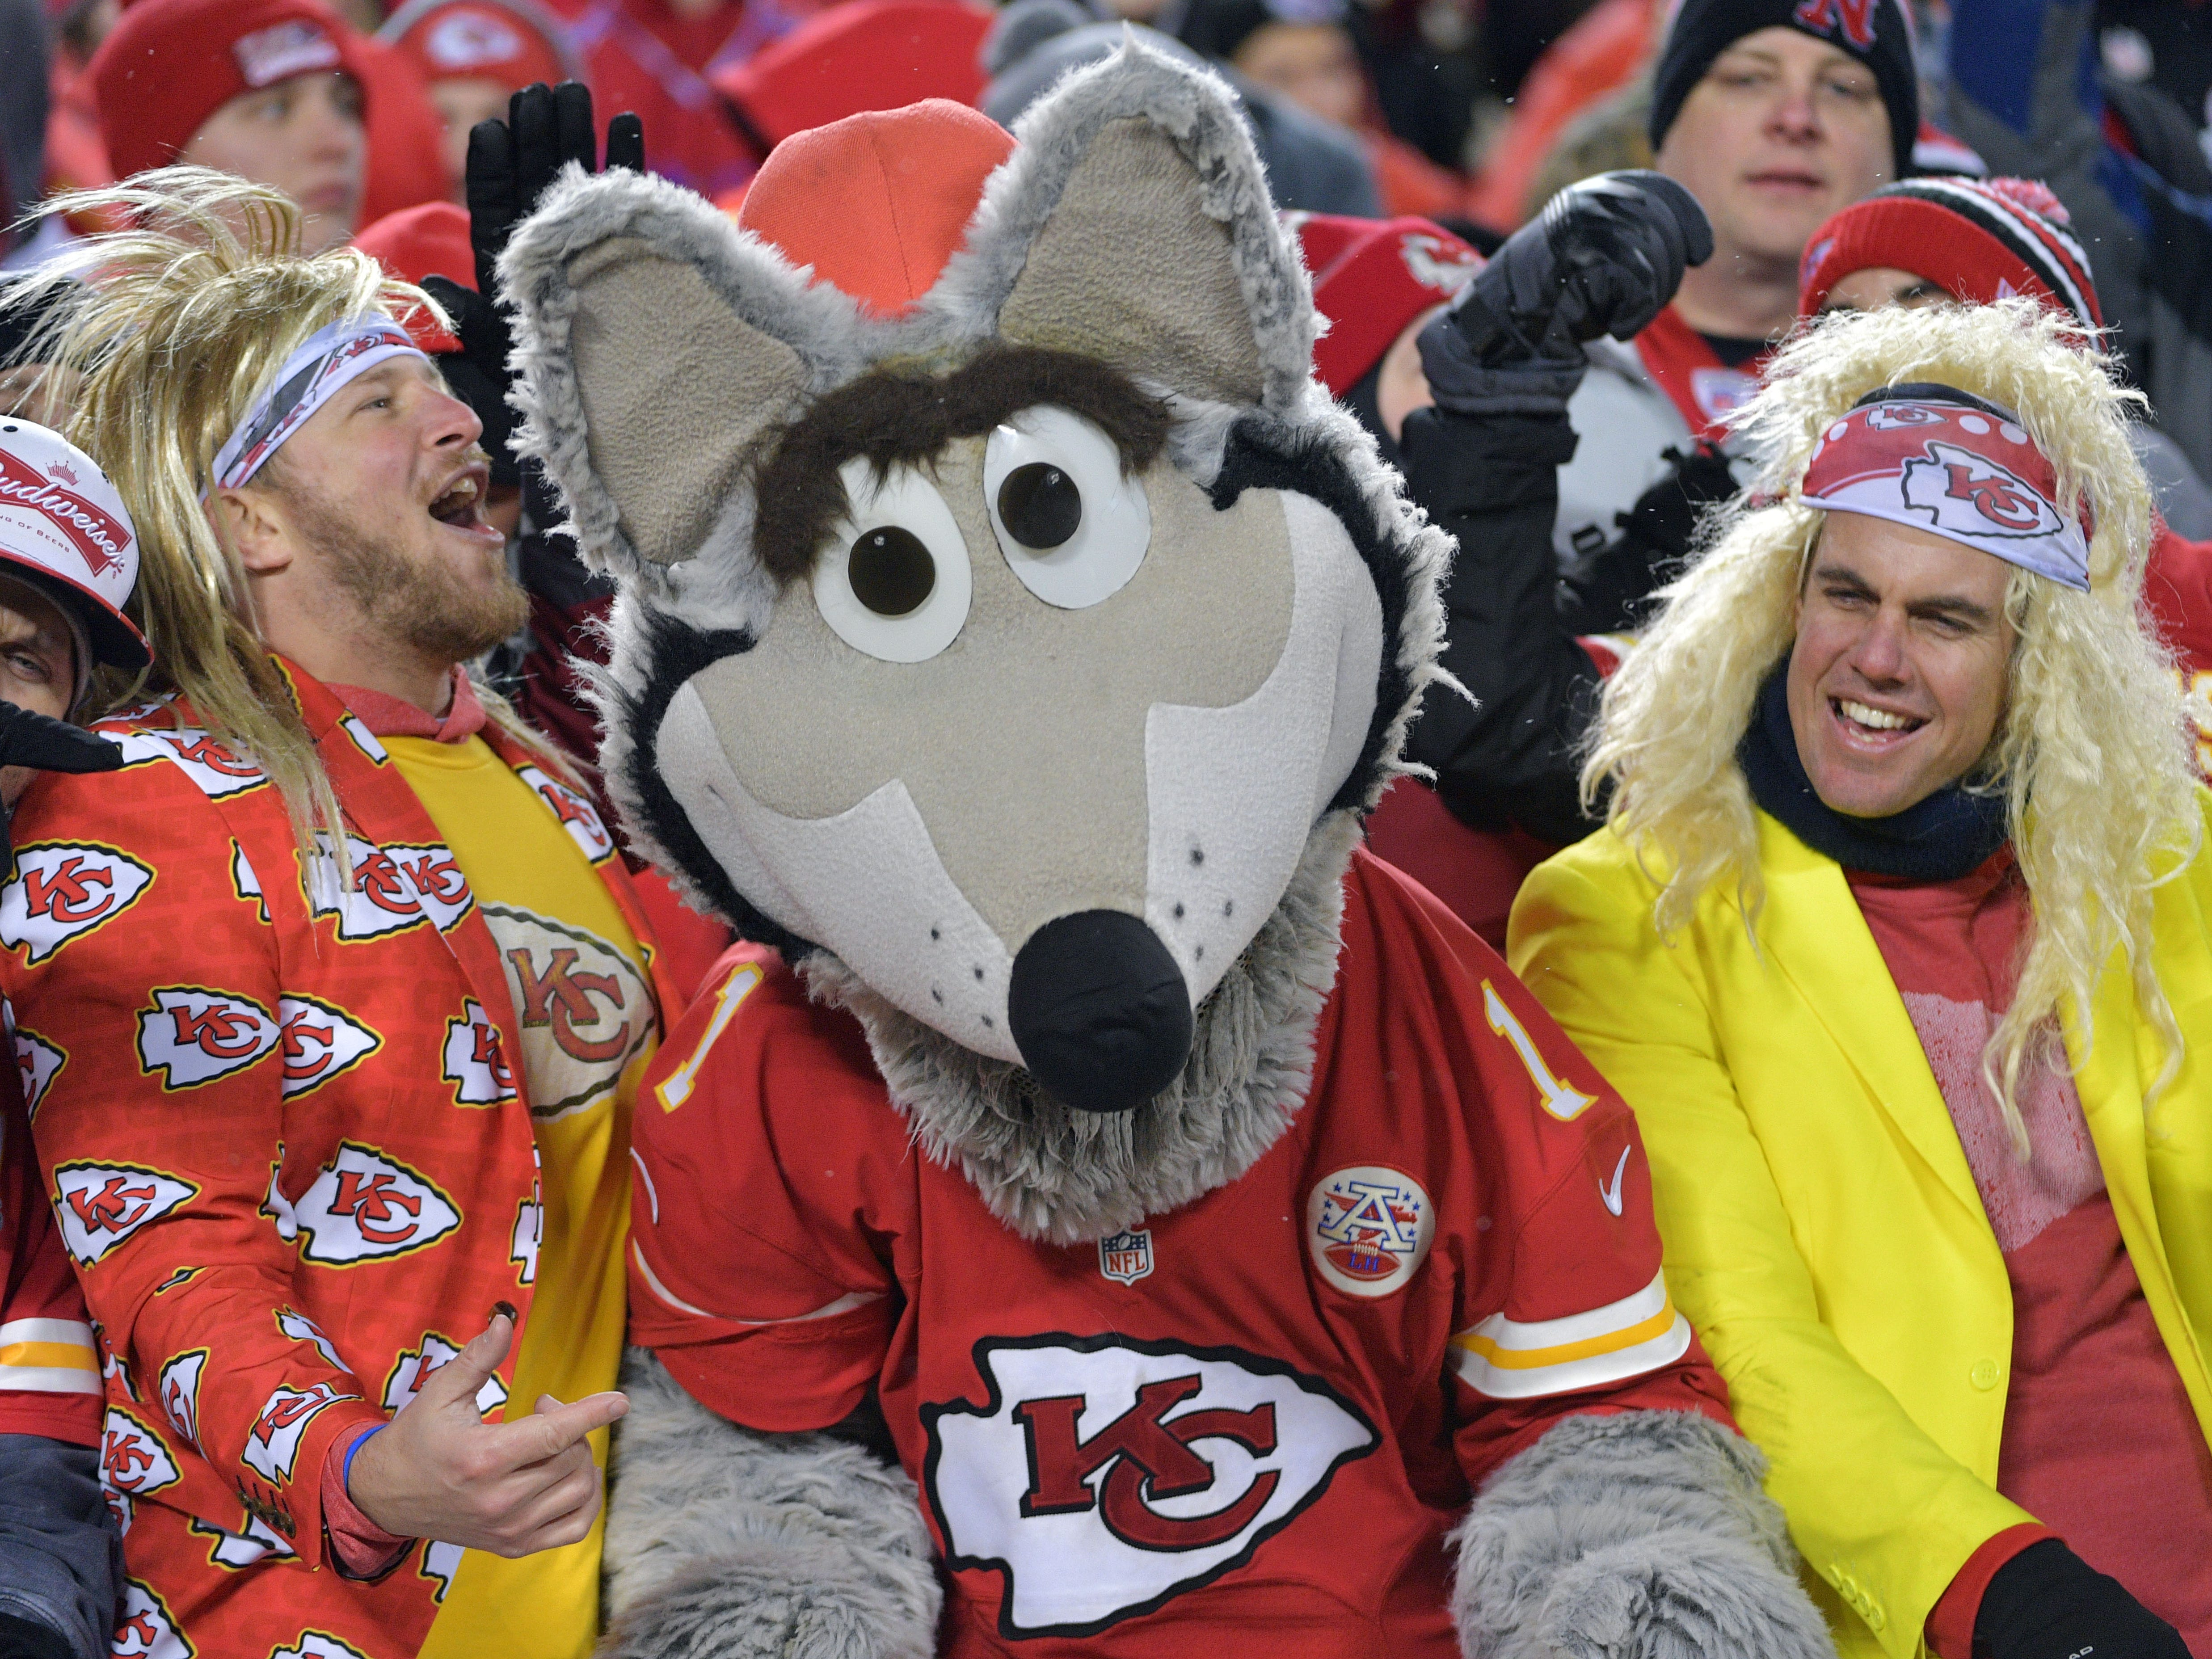 Fans dance with the Kansas City Chiefs mascot during the third quarter of the AFC divisional playoff at Arrowhead Stadium.